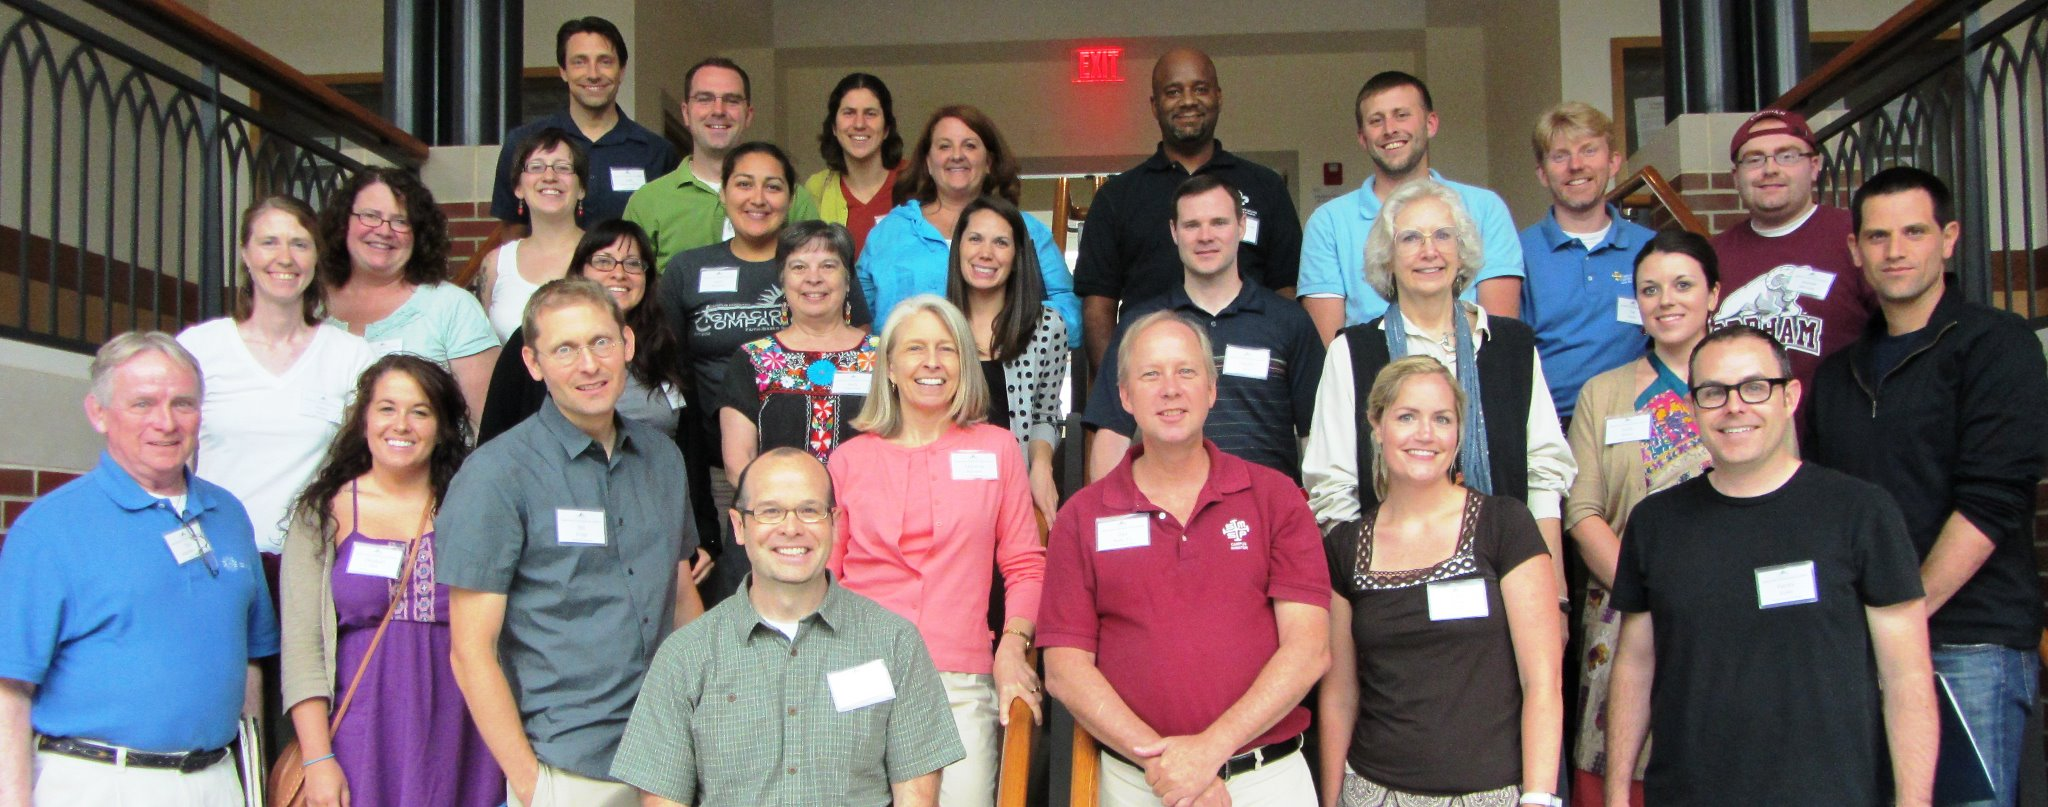 2012 Ignatian Immersion Experience Coordinator Summit Participants